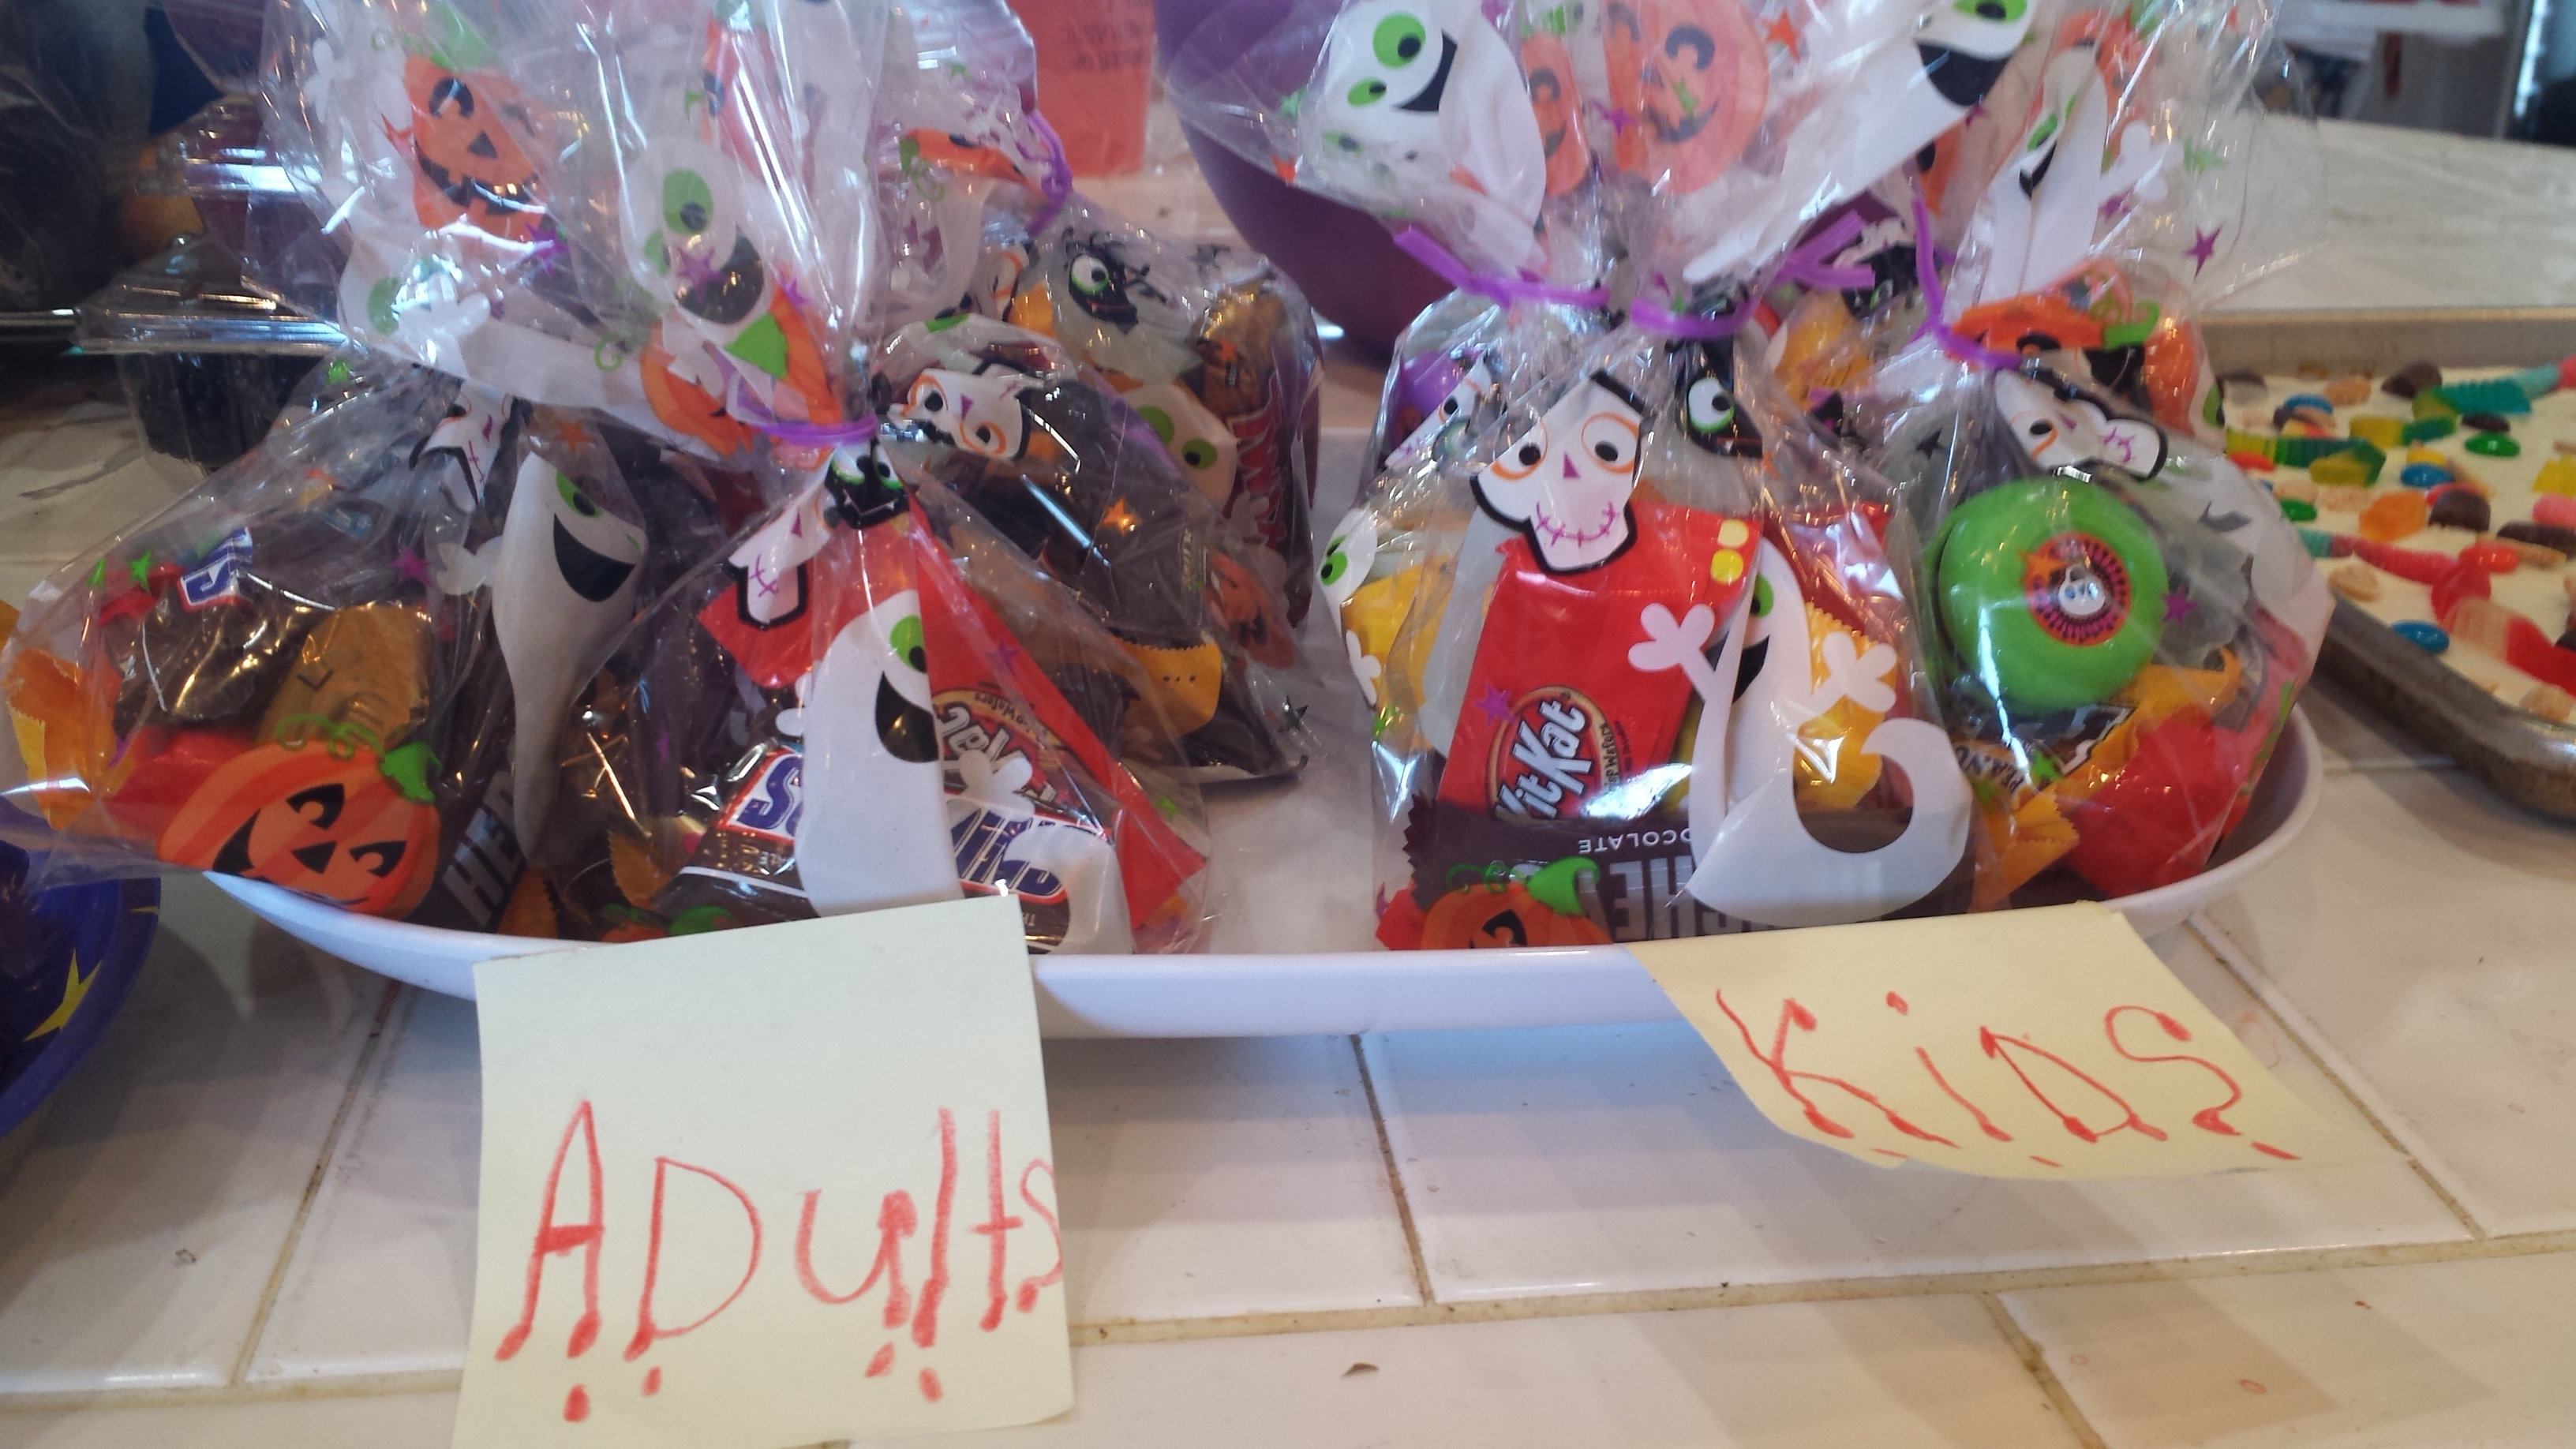 Party favors displayed nicely in Halloween Treat bags.  We sectioned out into Adults and Kids for special prizes.